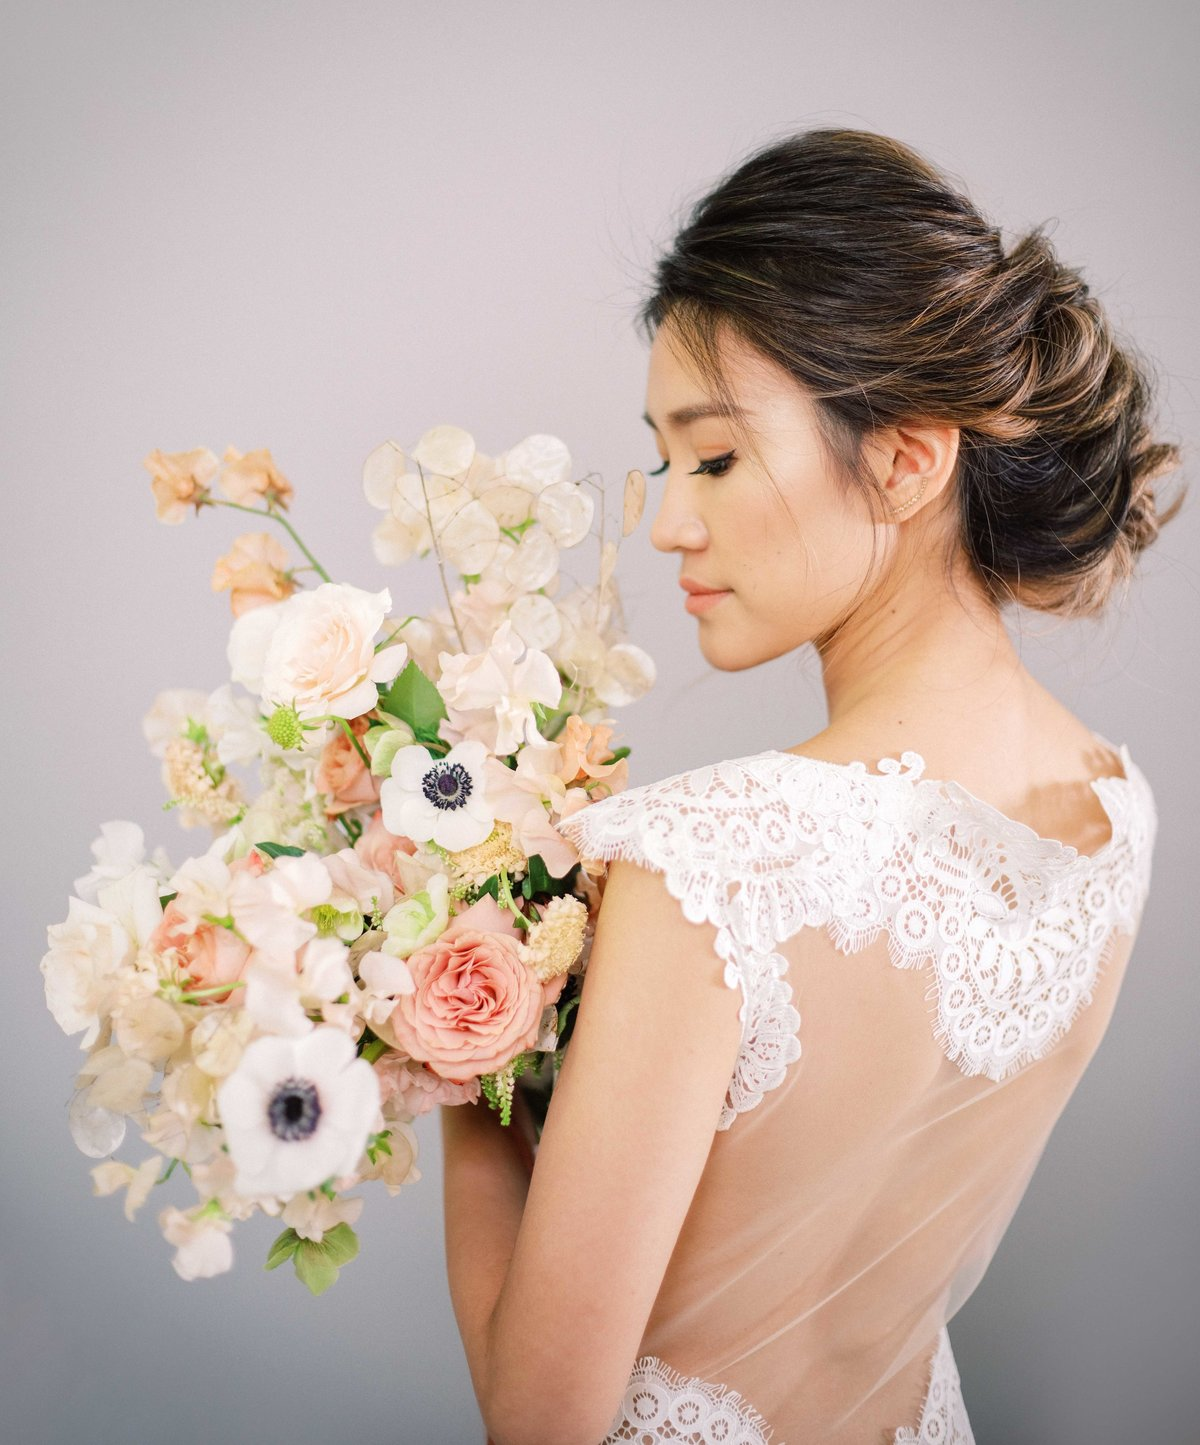 Babsie-Ly-Photography-Style-Me-Pretty-San-Diego-California-Film-Wedding-Photographer-Claire-Pettibone-Dress-Asian-Bride-013